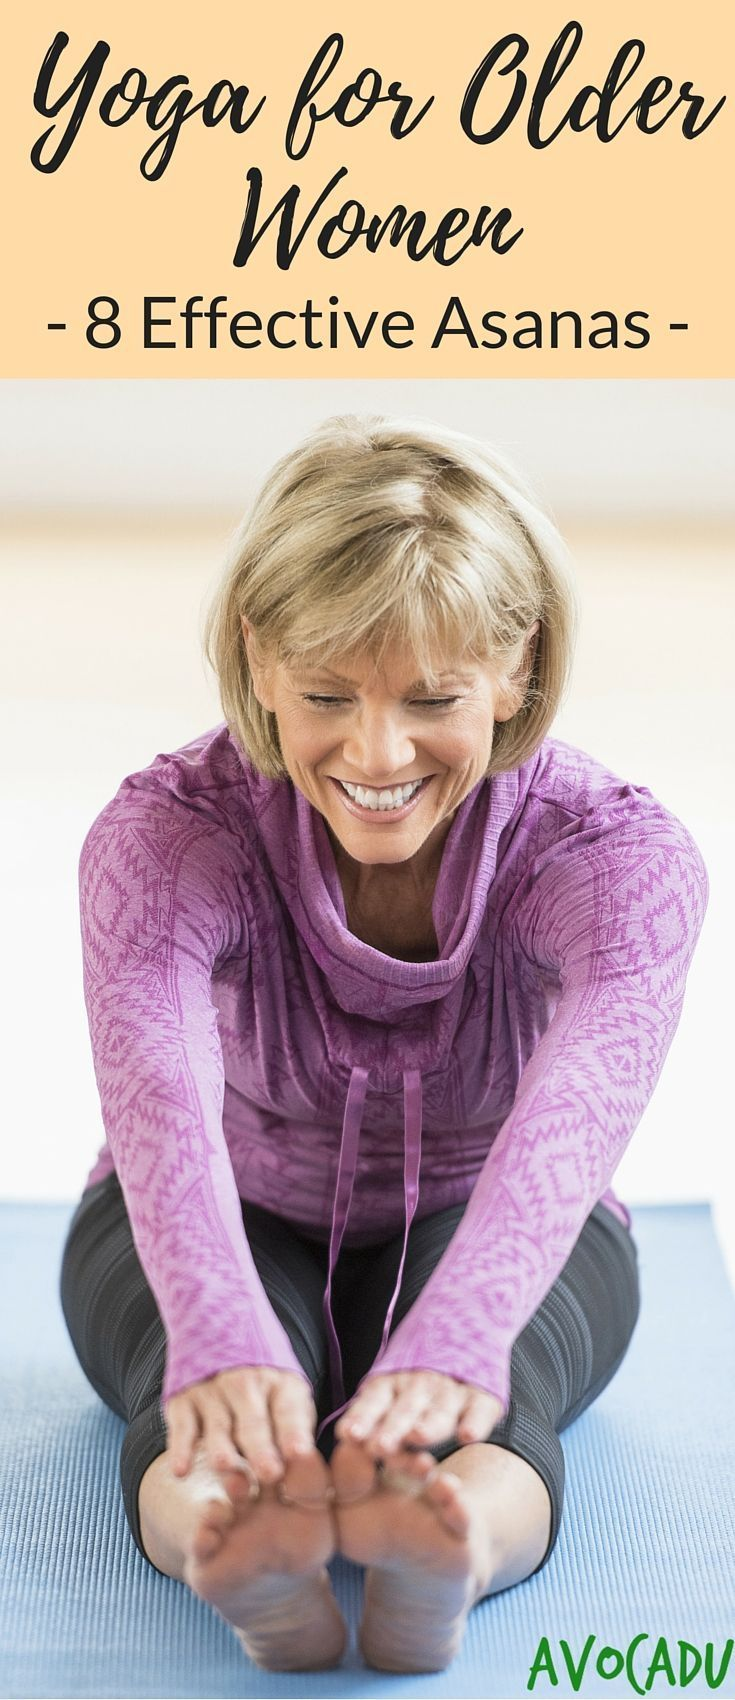 Yoga for Older Women, 8 Effective Asanas #yoga #zen